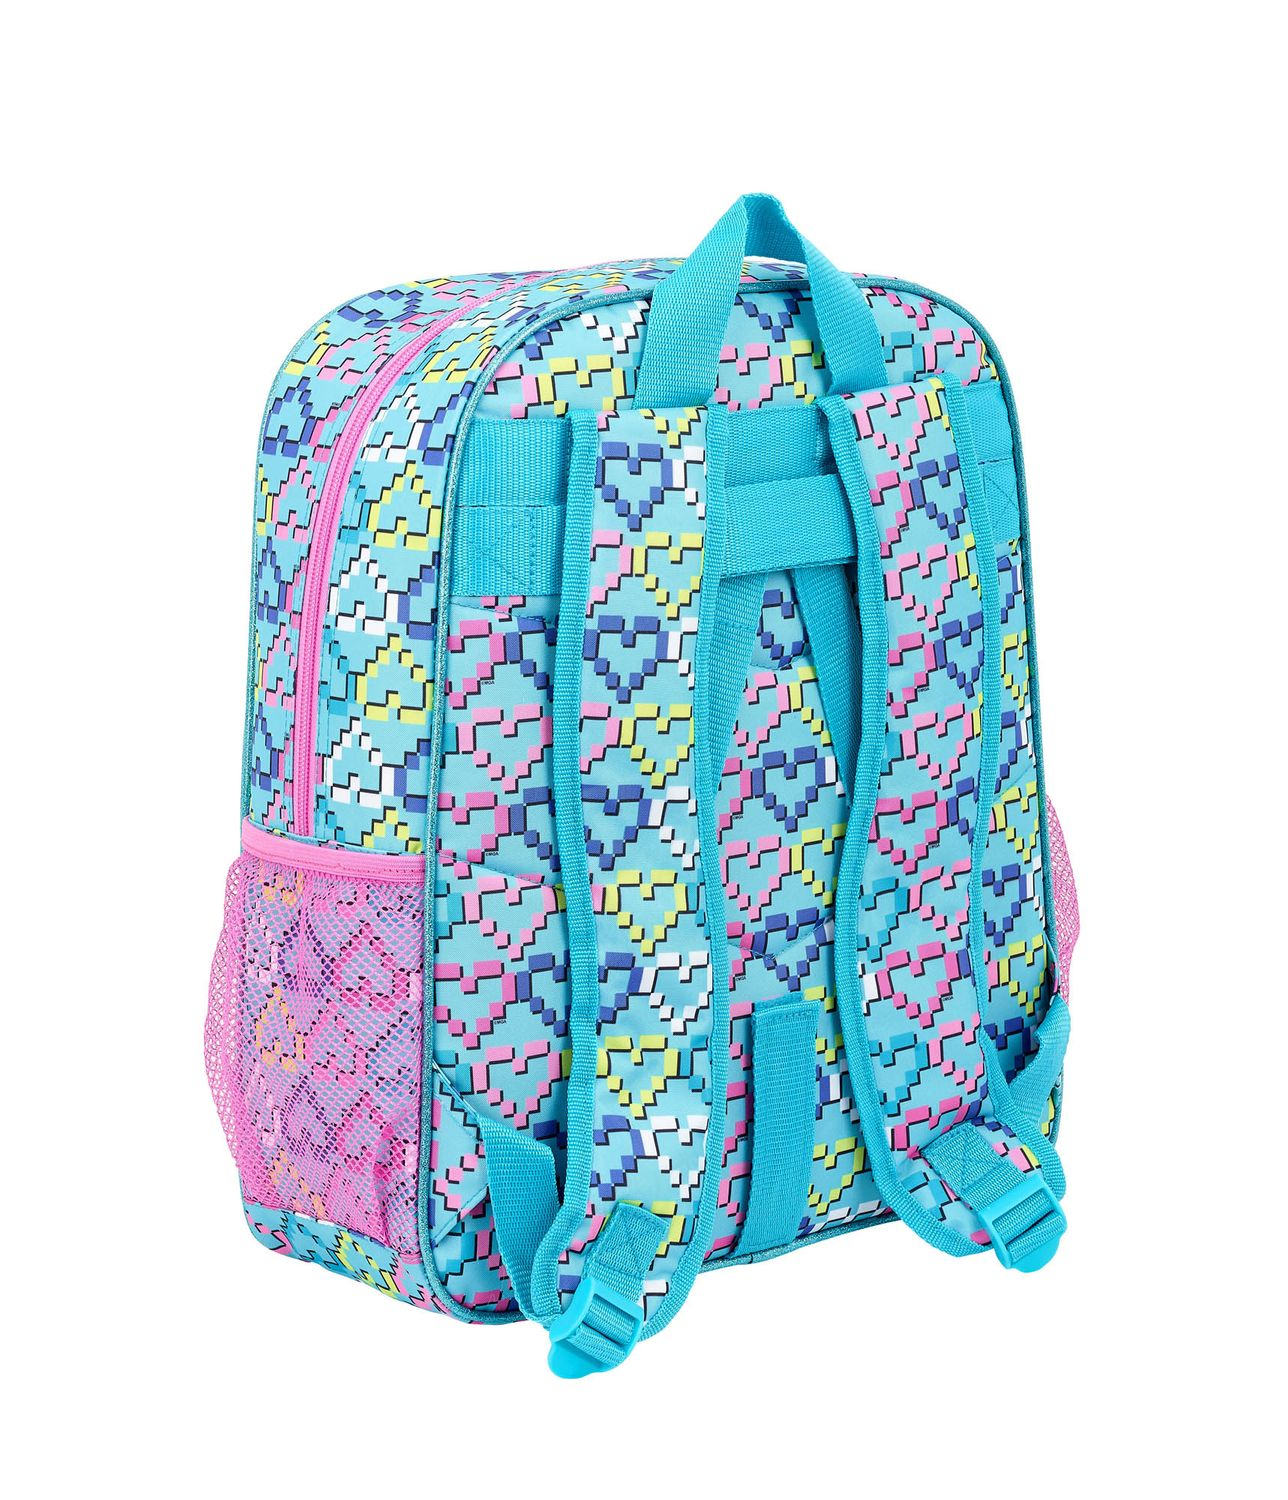 LOL Surprise Backpack 38cm – image 2